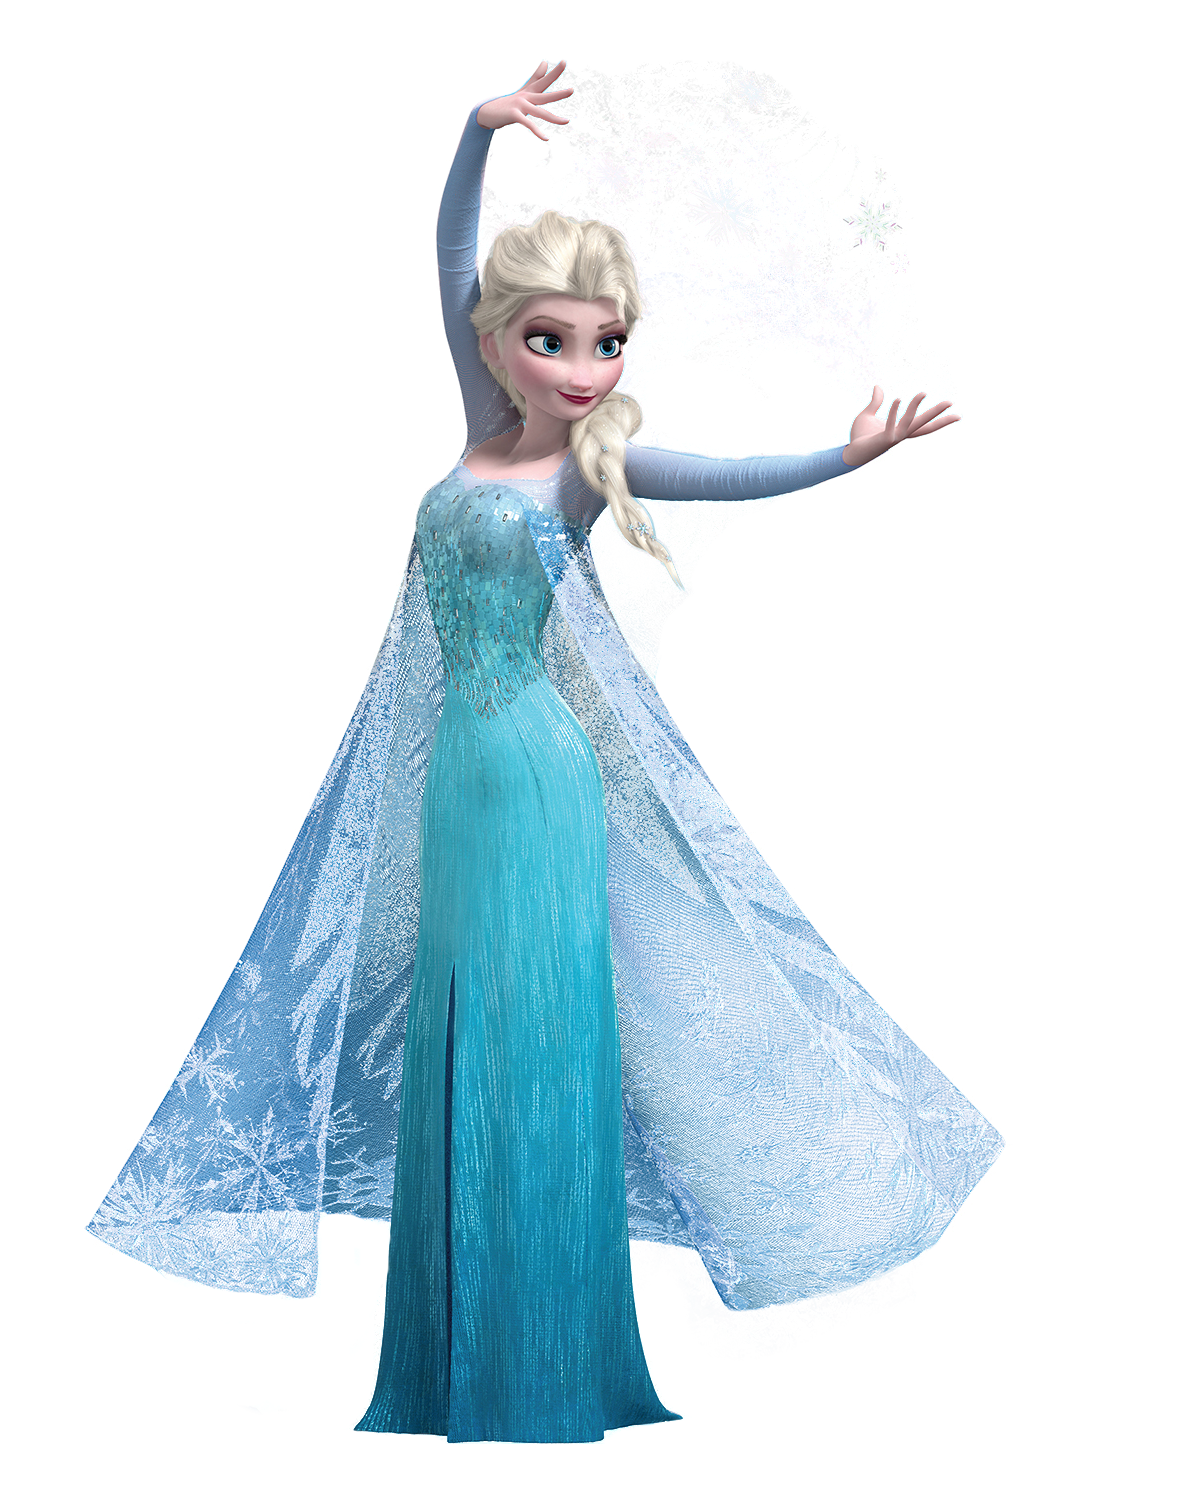 elsa-frozen-disney-03 - Frozen HD PNG